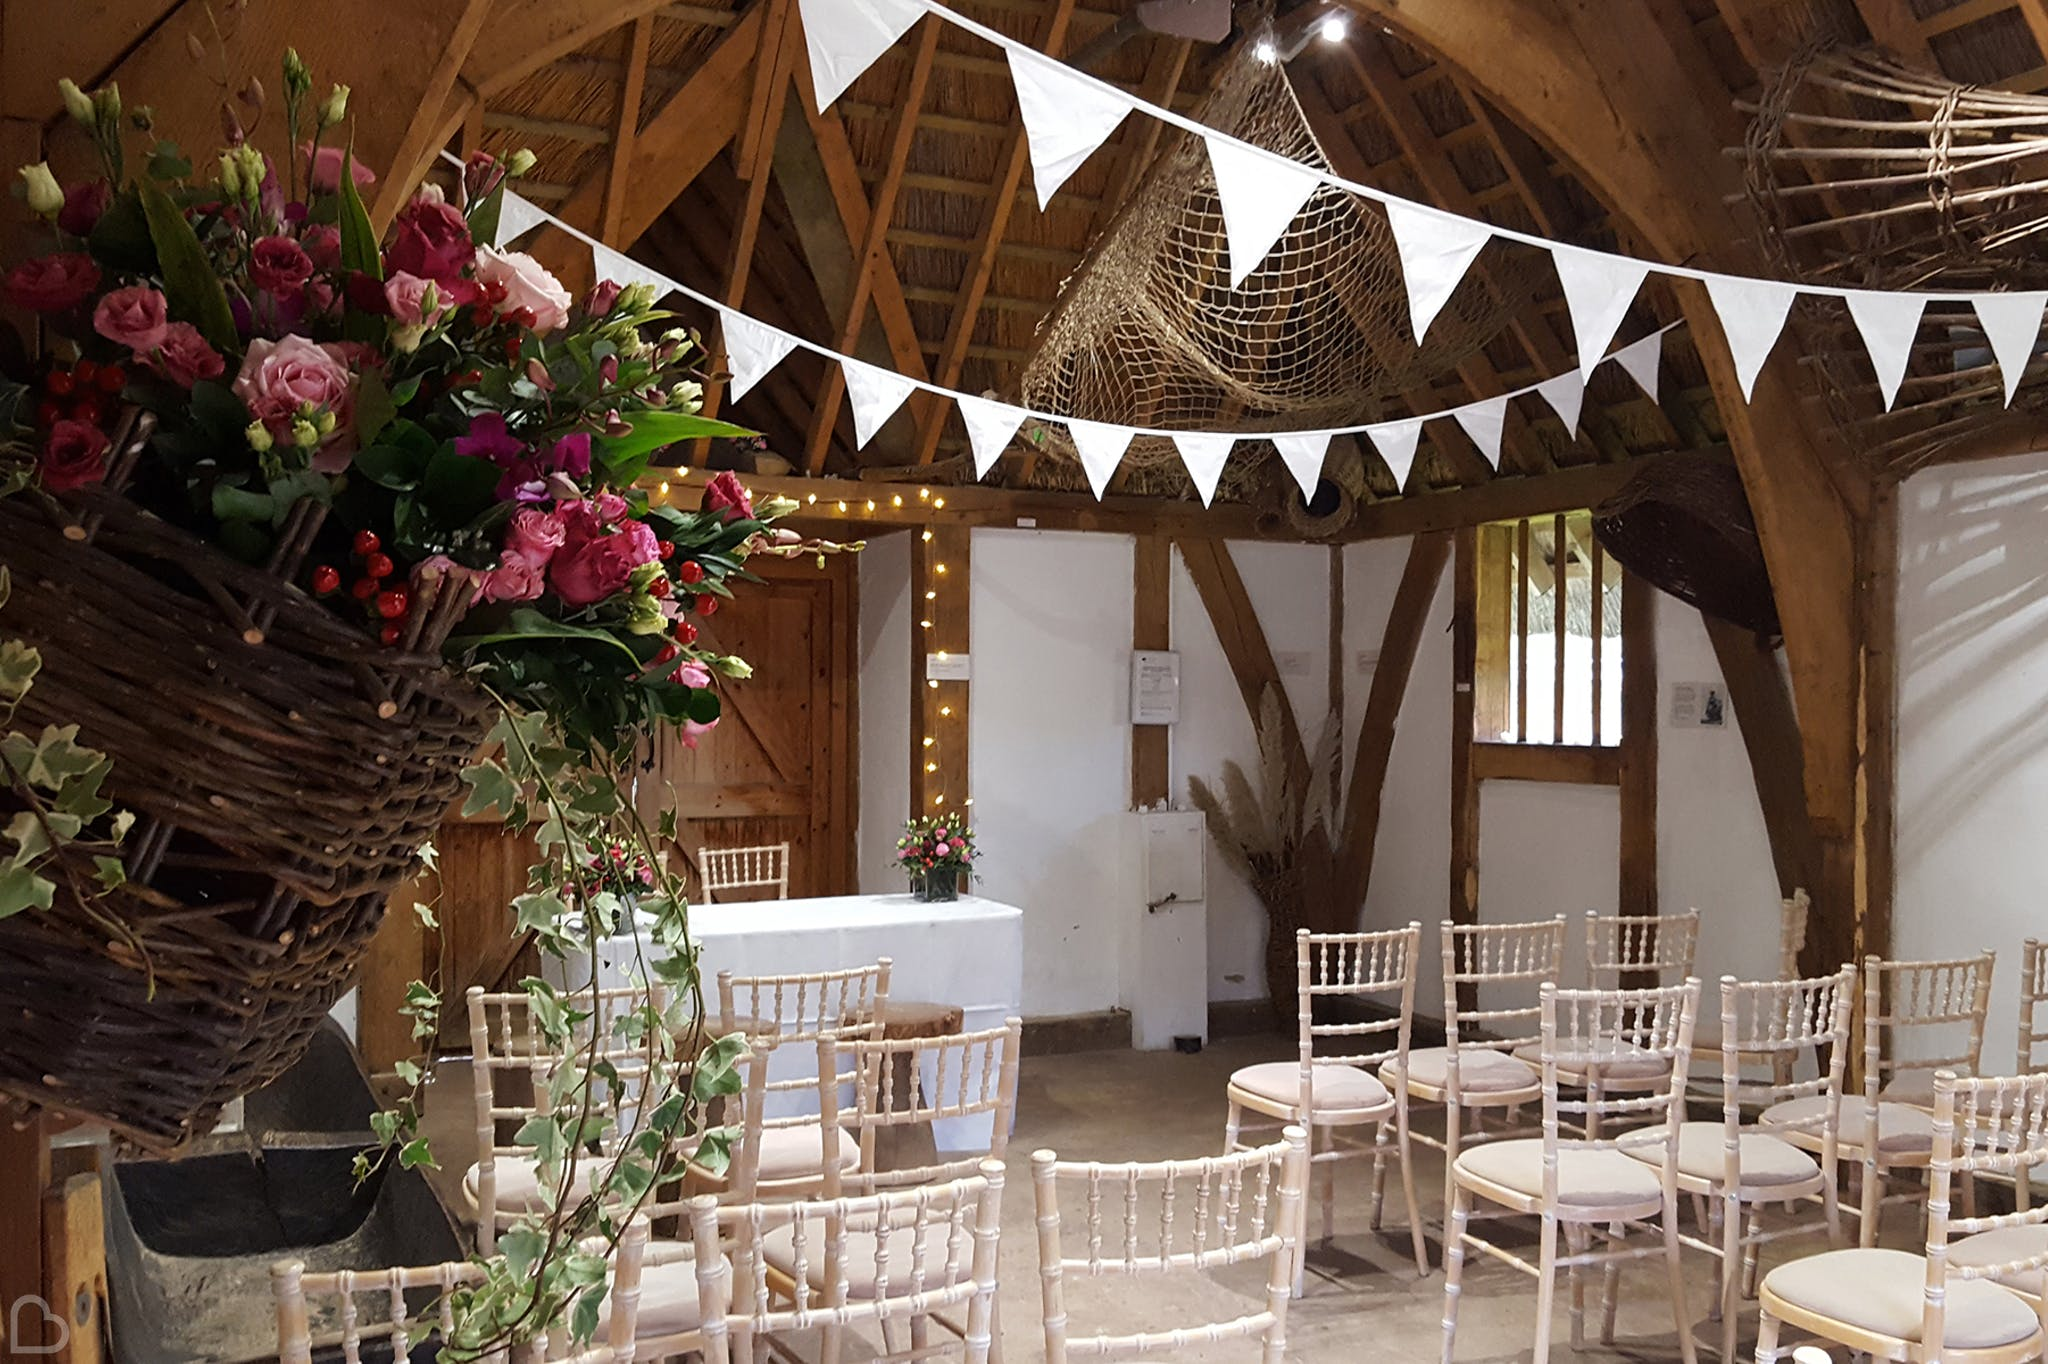 wwt london wetland centre set up for wedding ceremony.